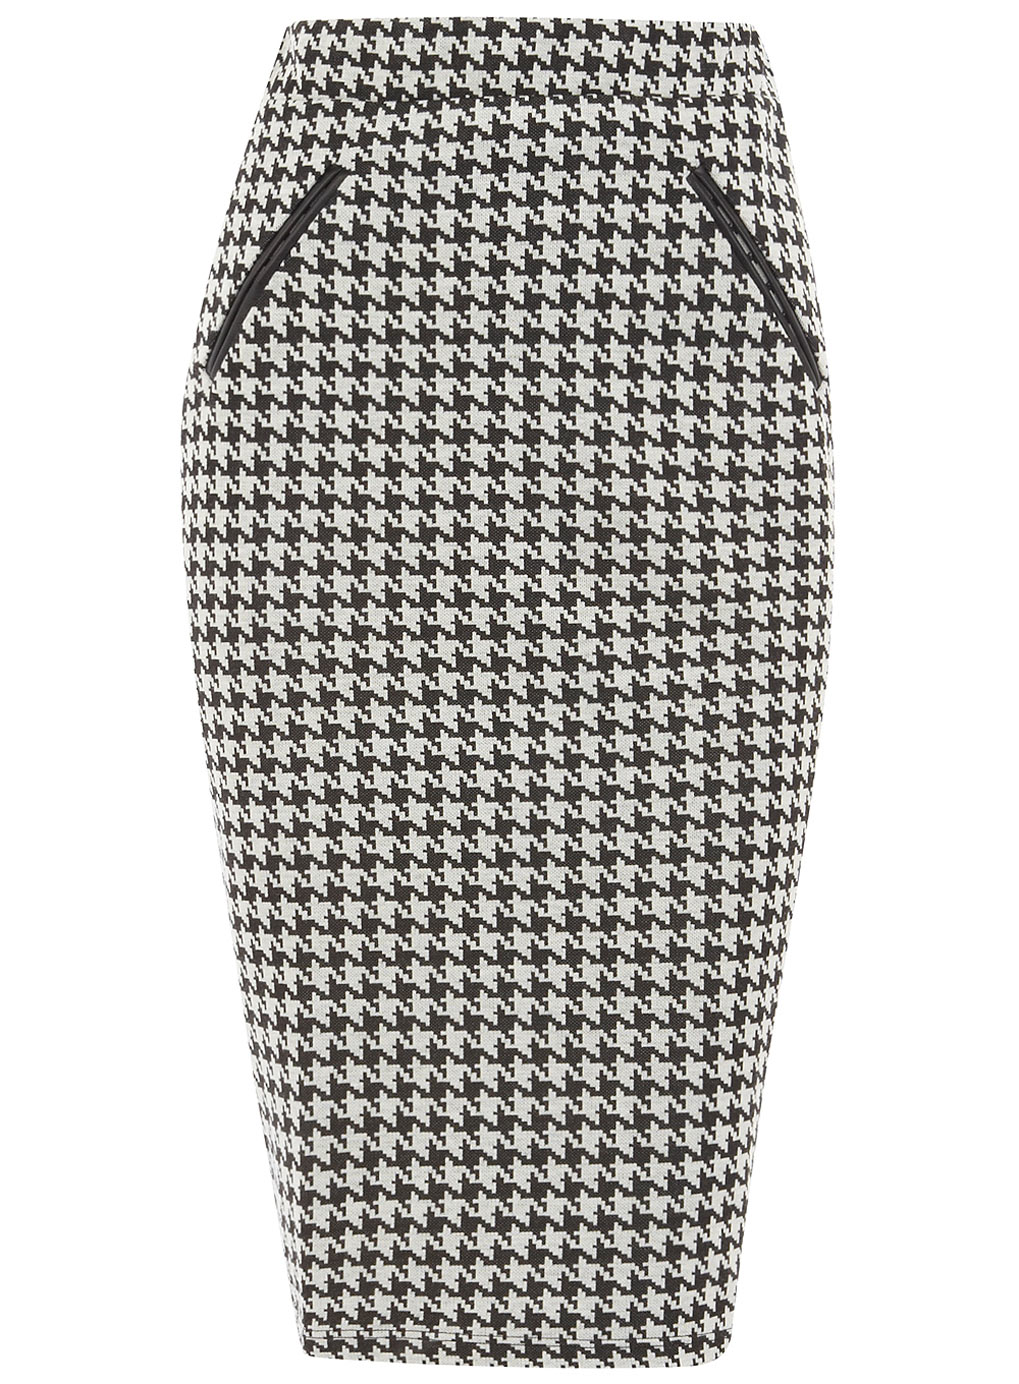 This plus size knee length pencil skirt from Ashley Stewart has a classy, cool & trendy houndstooth print all over, with a fun & flirty slit on the front!